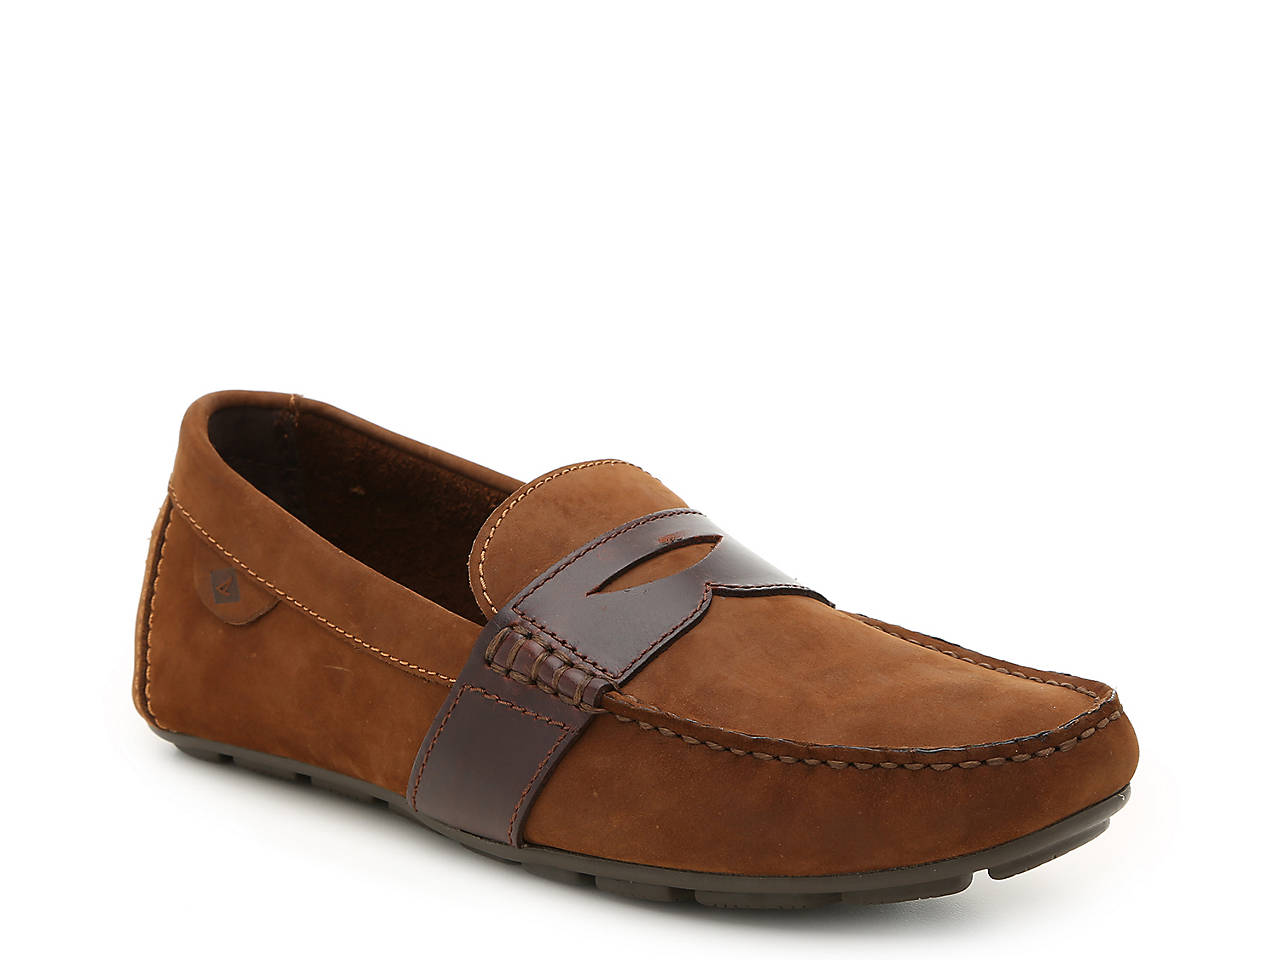 574eb934b0a Sperry Top-Sider Wave Driver Penny Loafer Men s Shoes